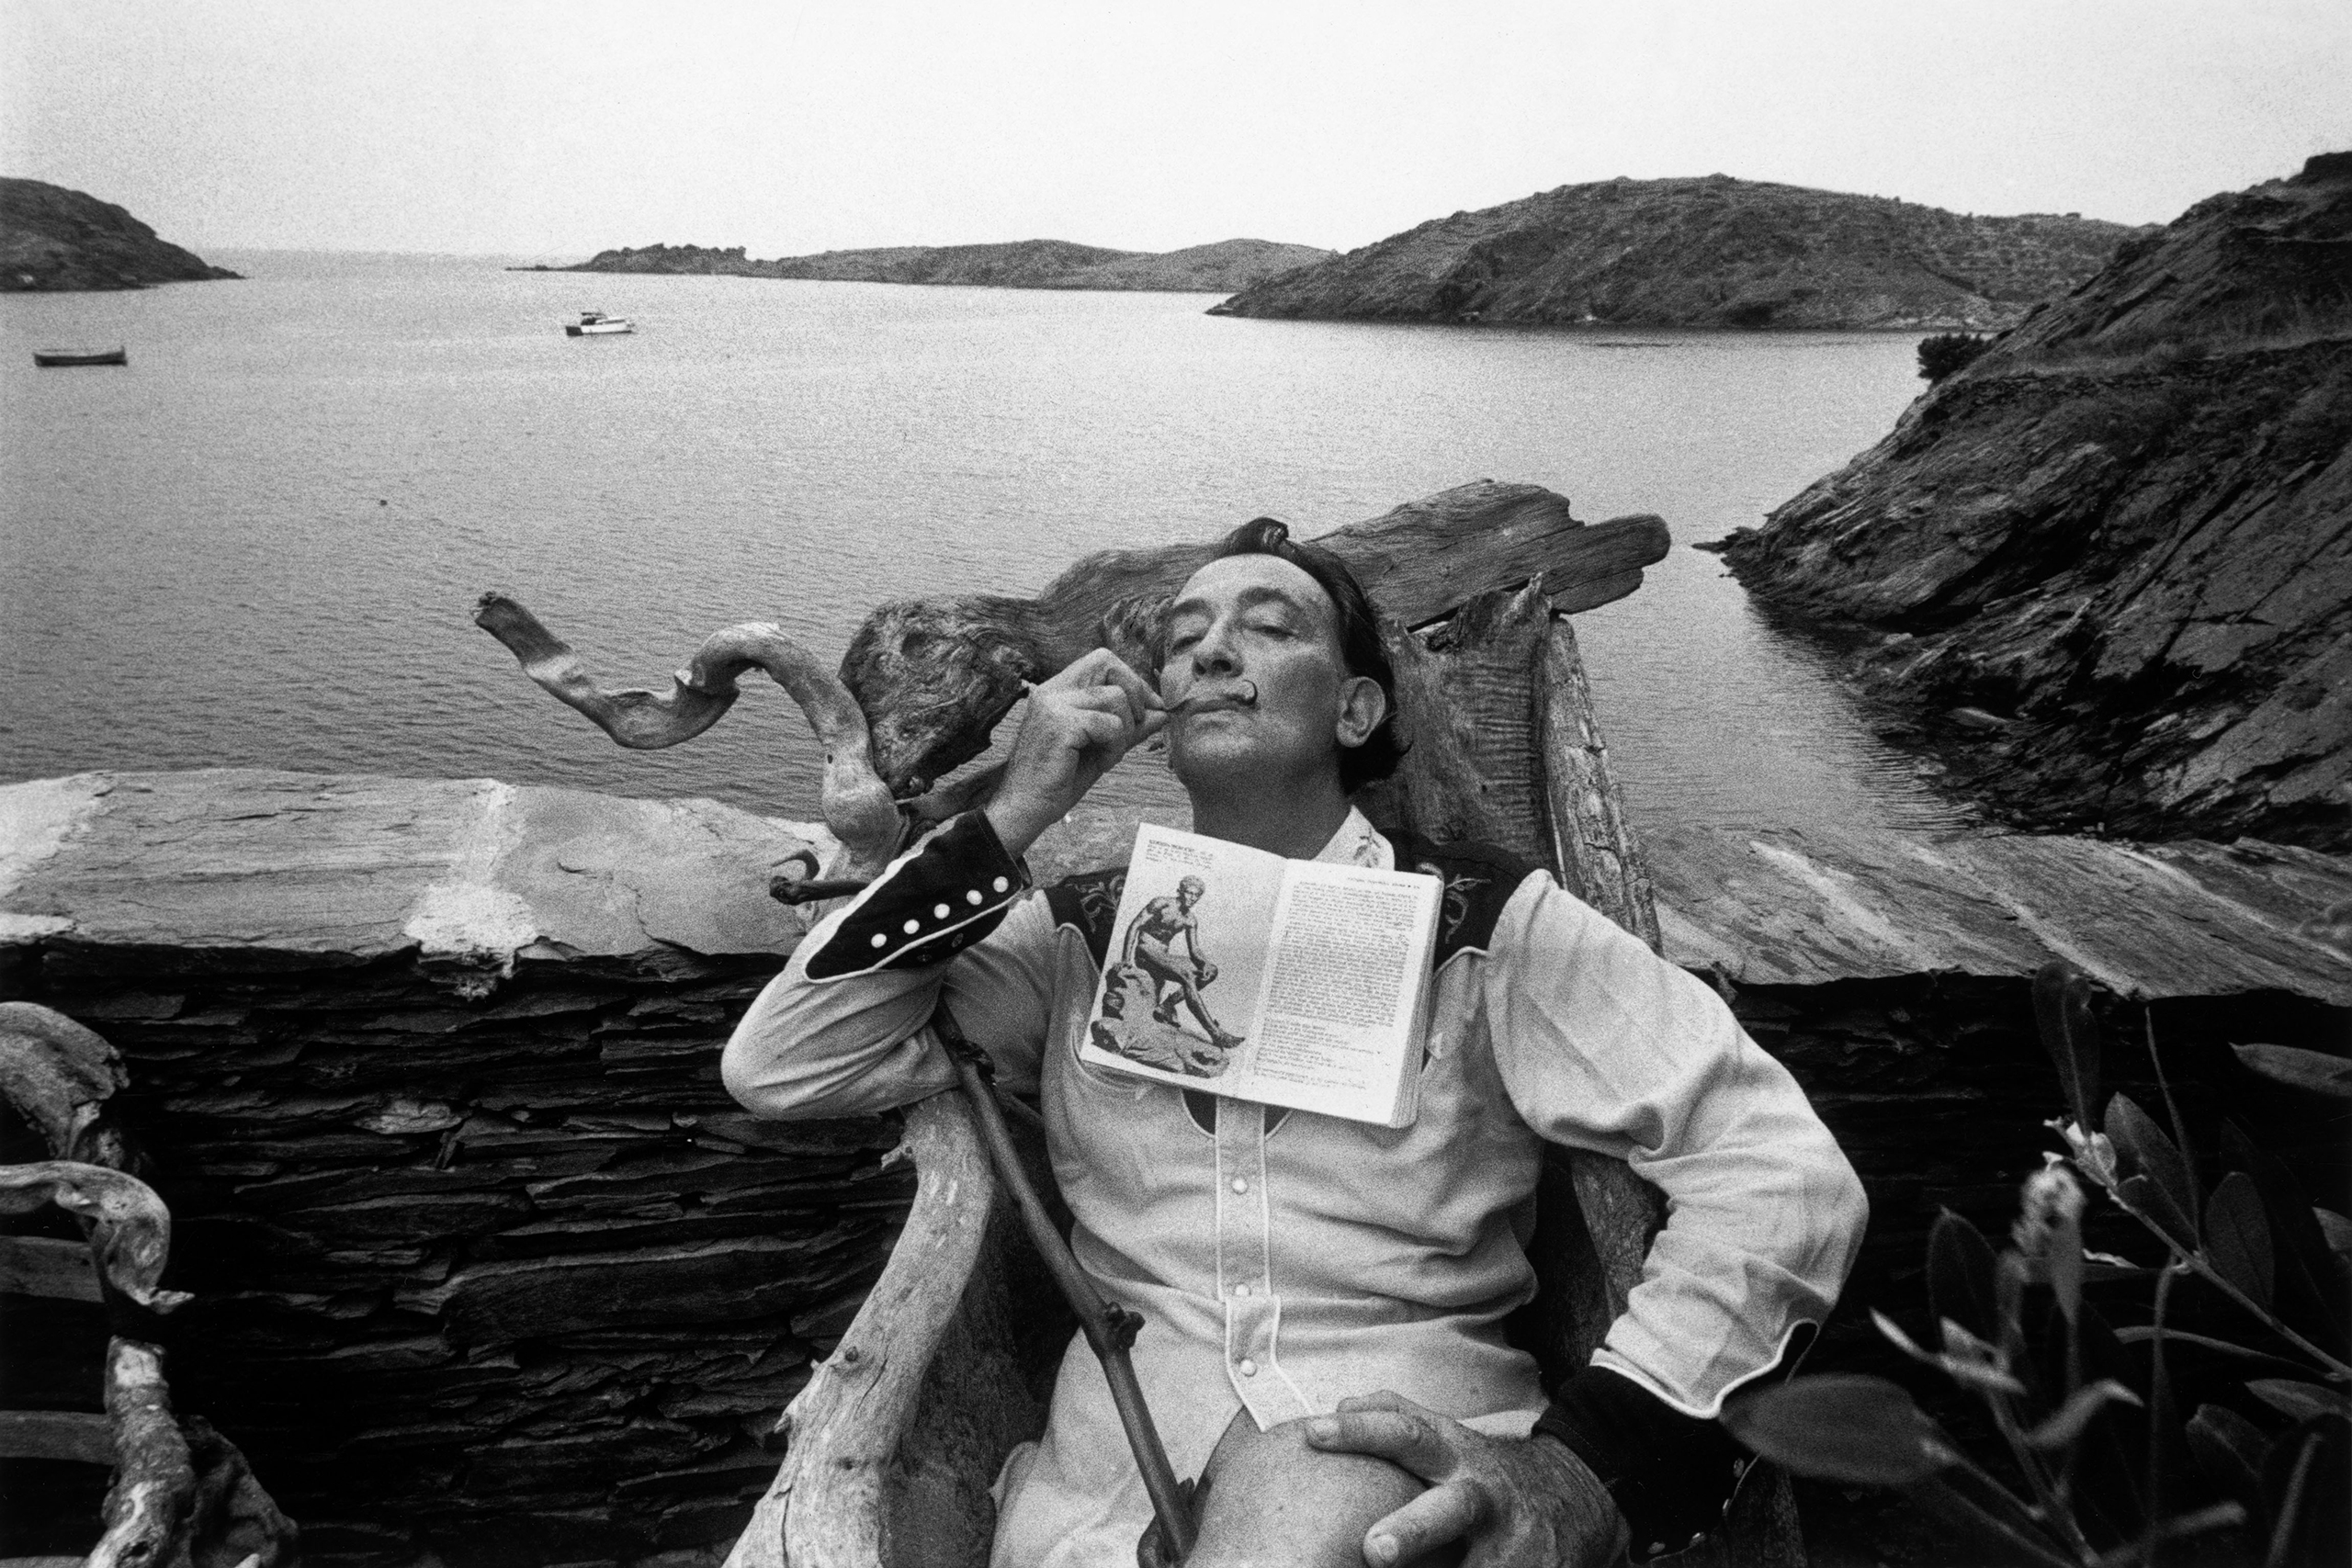 Spanish painter Salvador Dali at his home at Port Lligat, near Cadaques, on the Costa Brava, Spain, 1963.